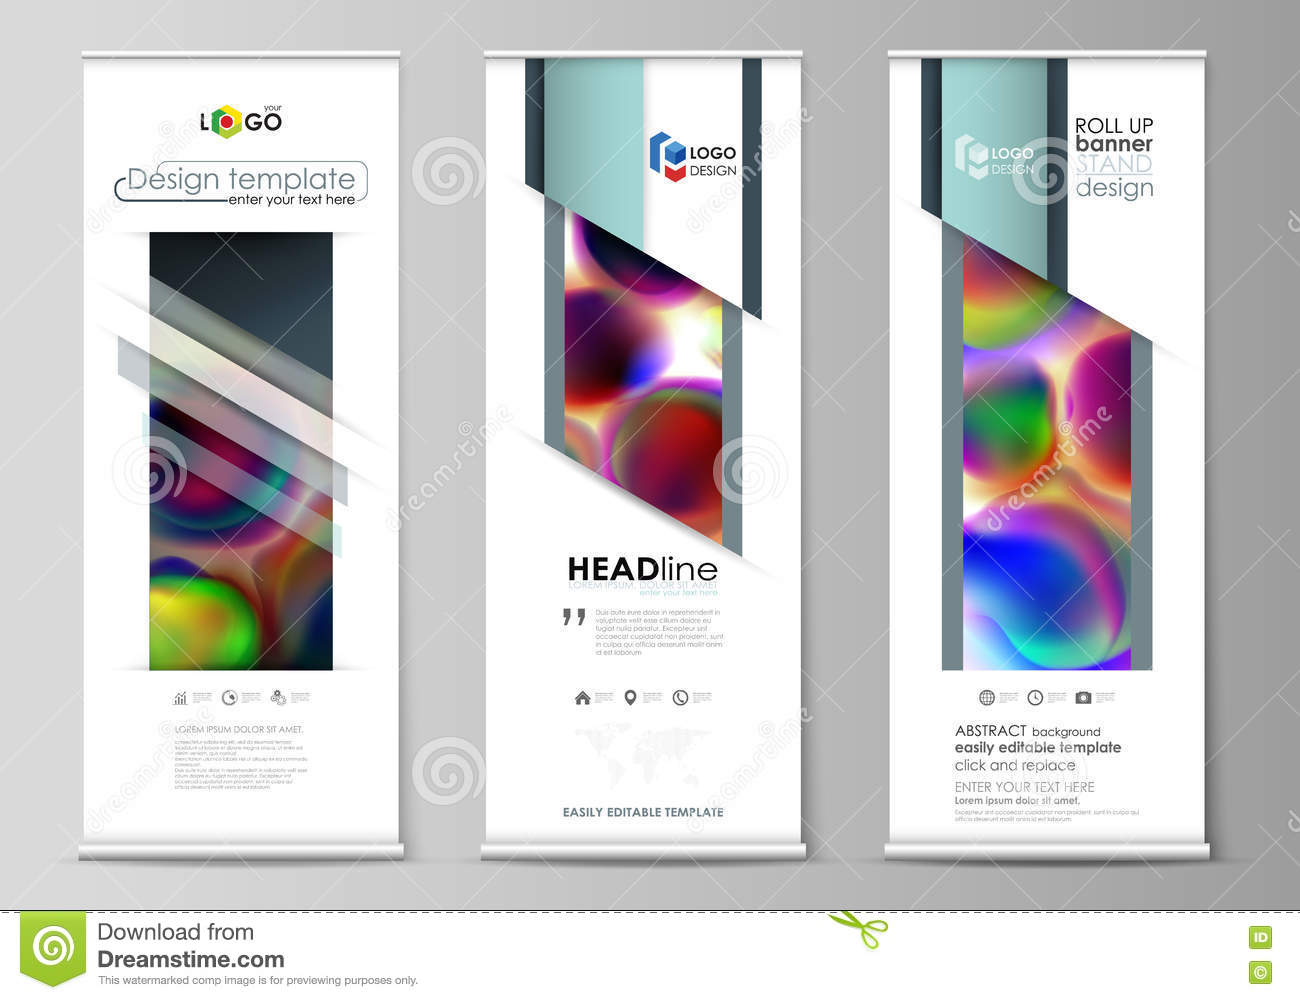 roll up banner stands flat templates geometric style modern